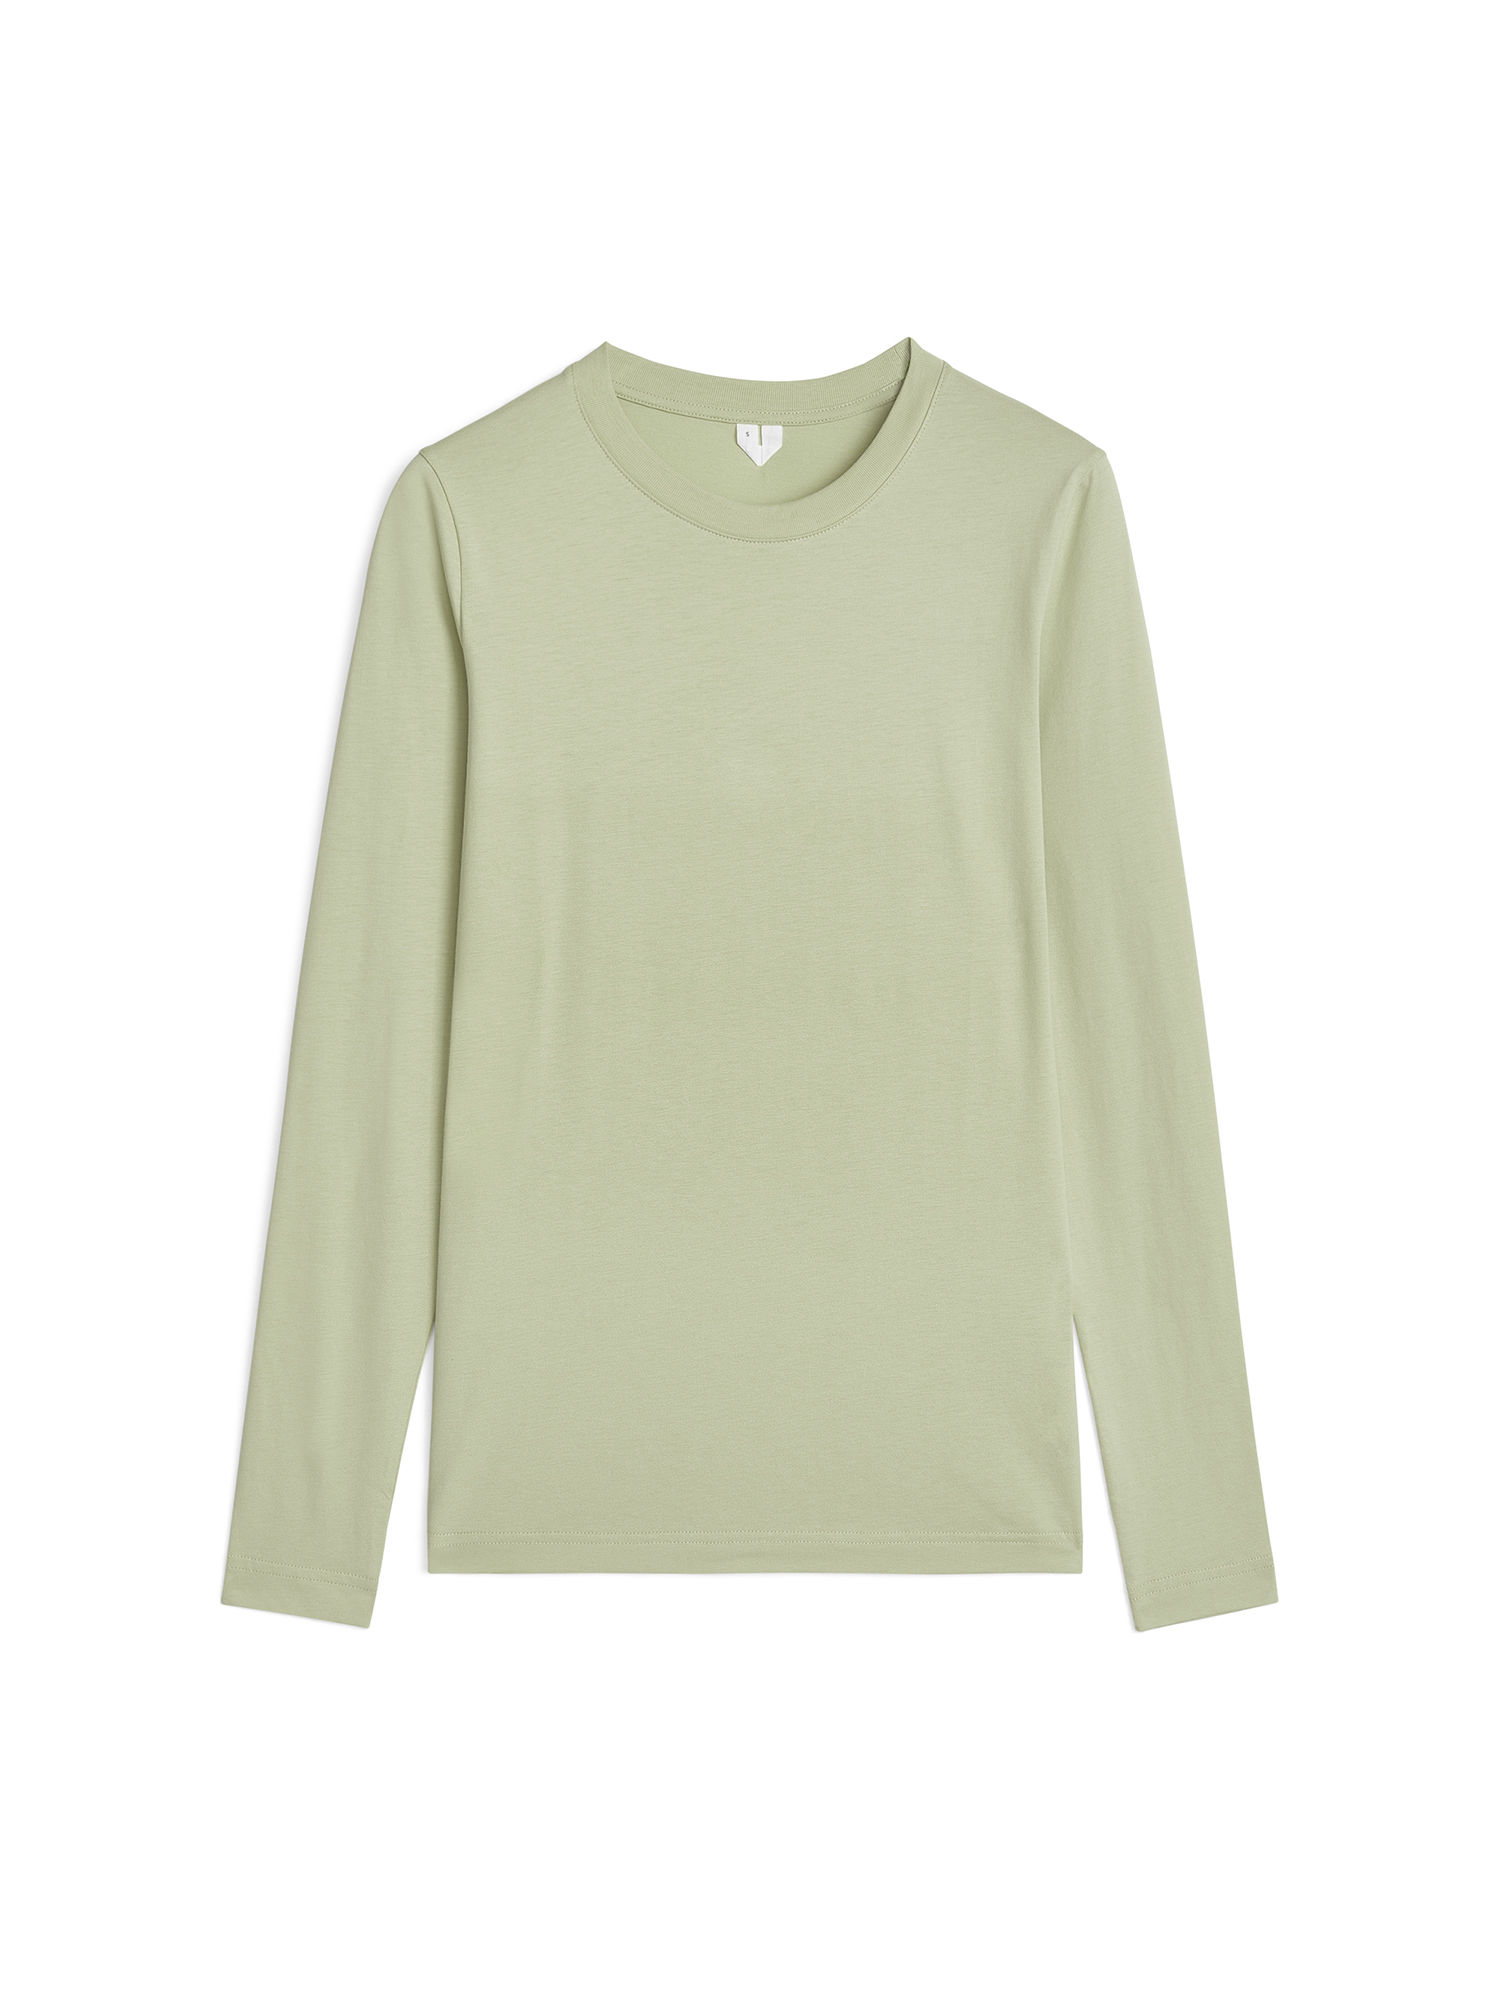 Fabric Swatch image of Arket long sleeve t-shirt in green